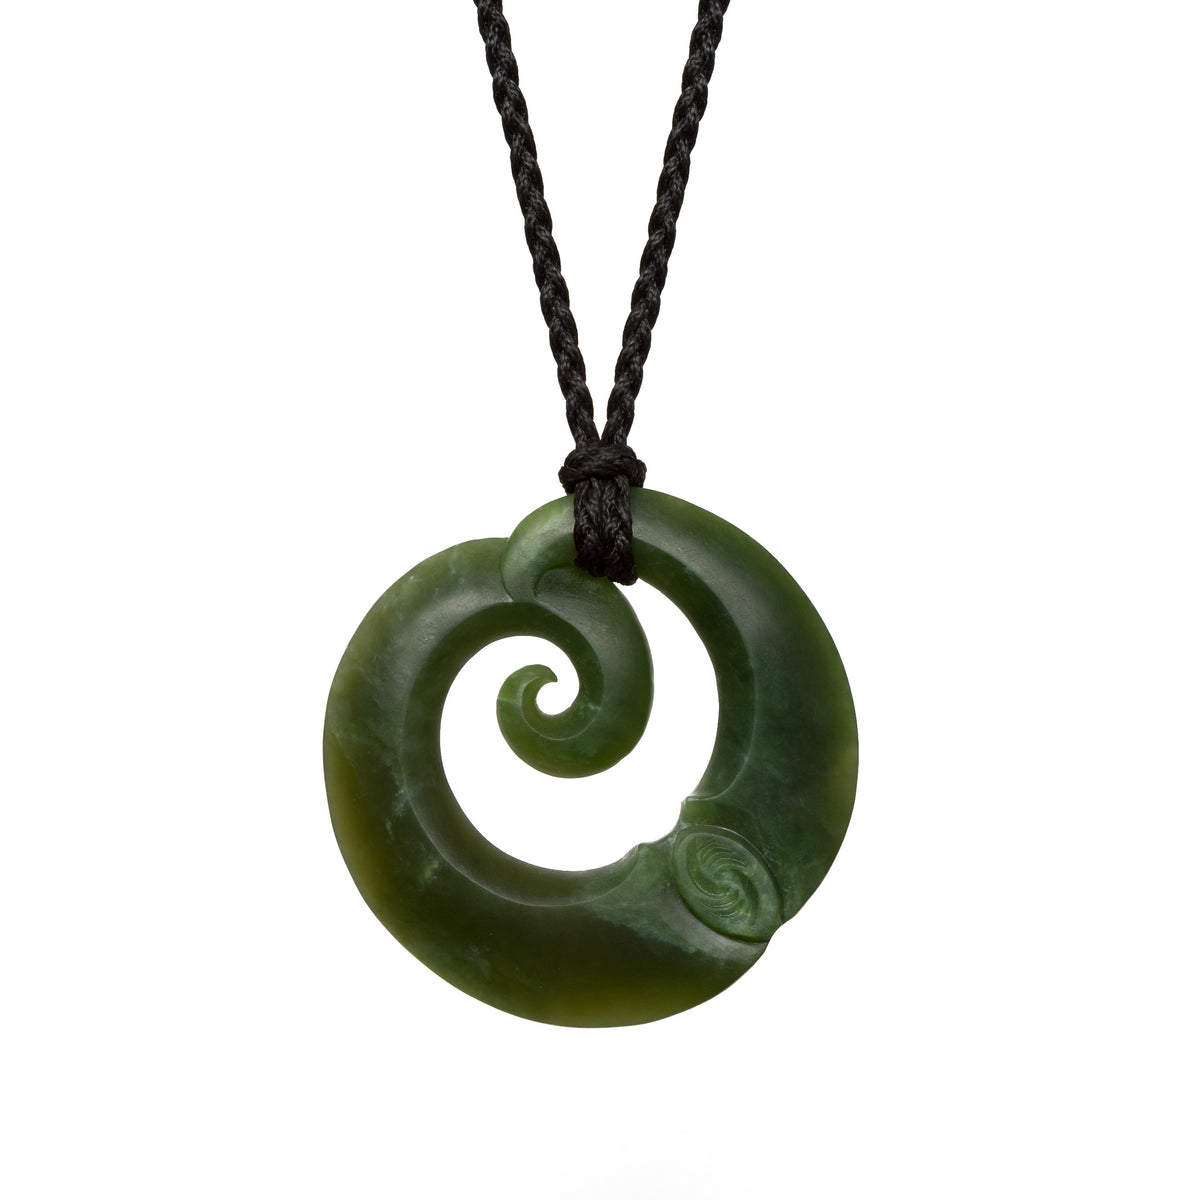 47mm x 45mm / New Zealand Pounamu // TAMAKO428P-A